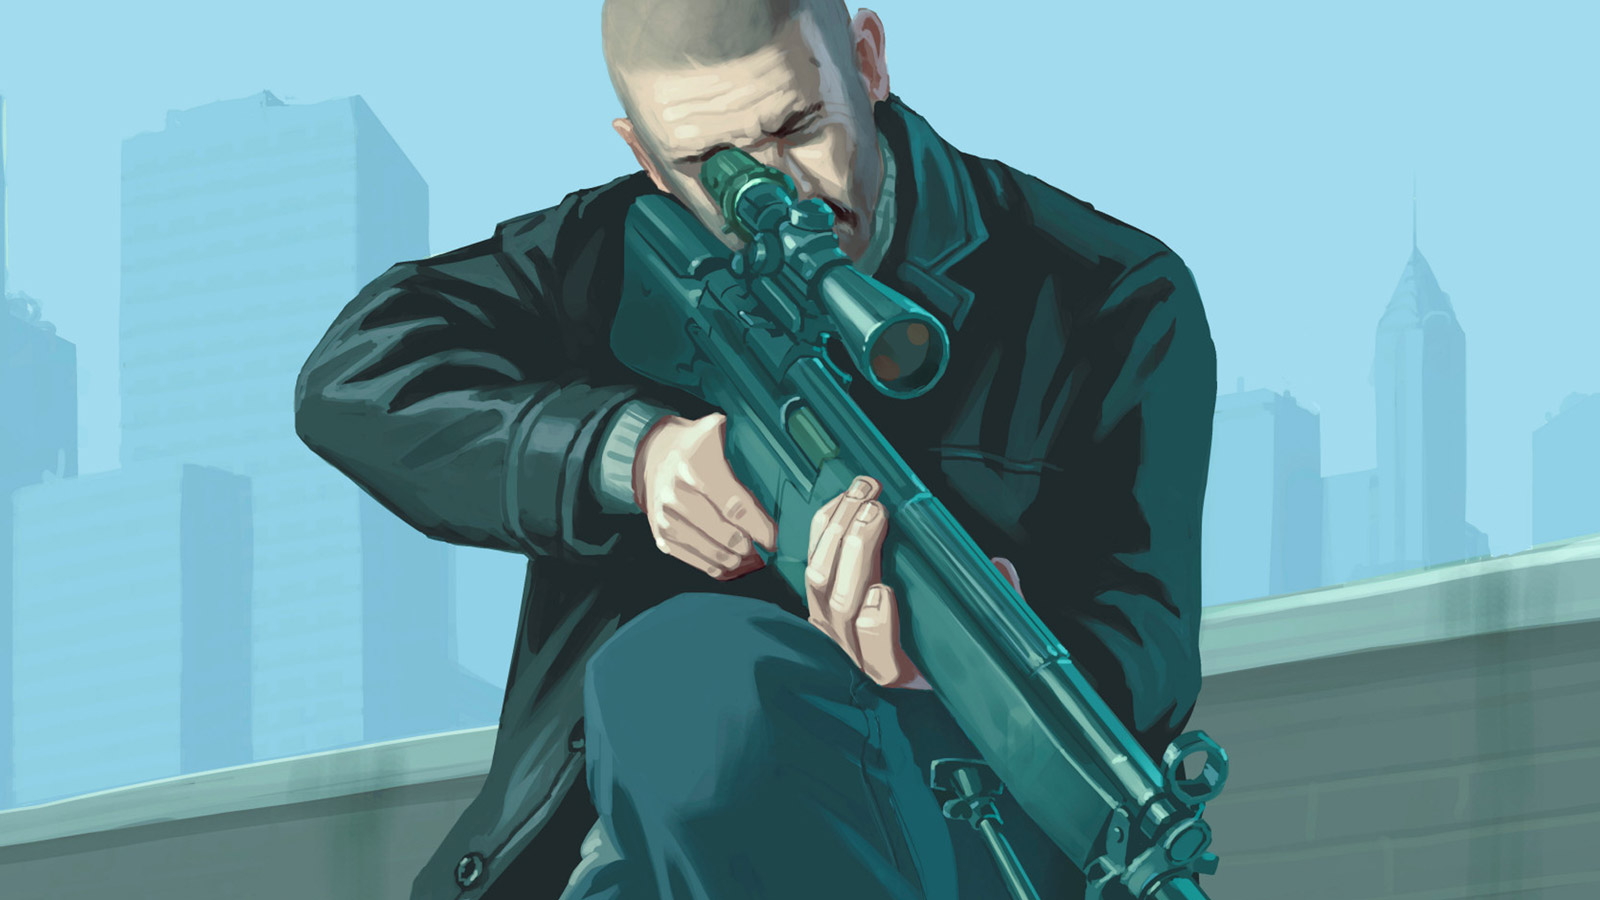 Free Grand Theft Auto IV Wallpaper in 1600x900